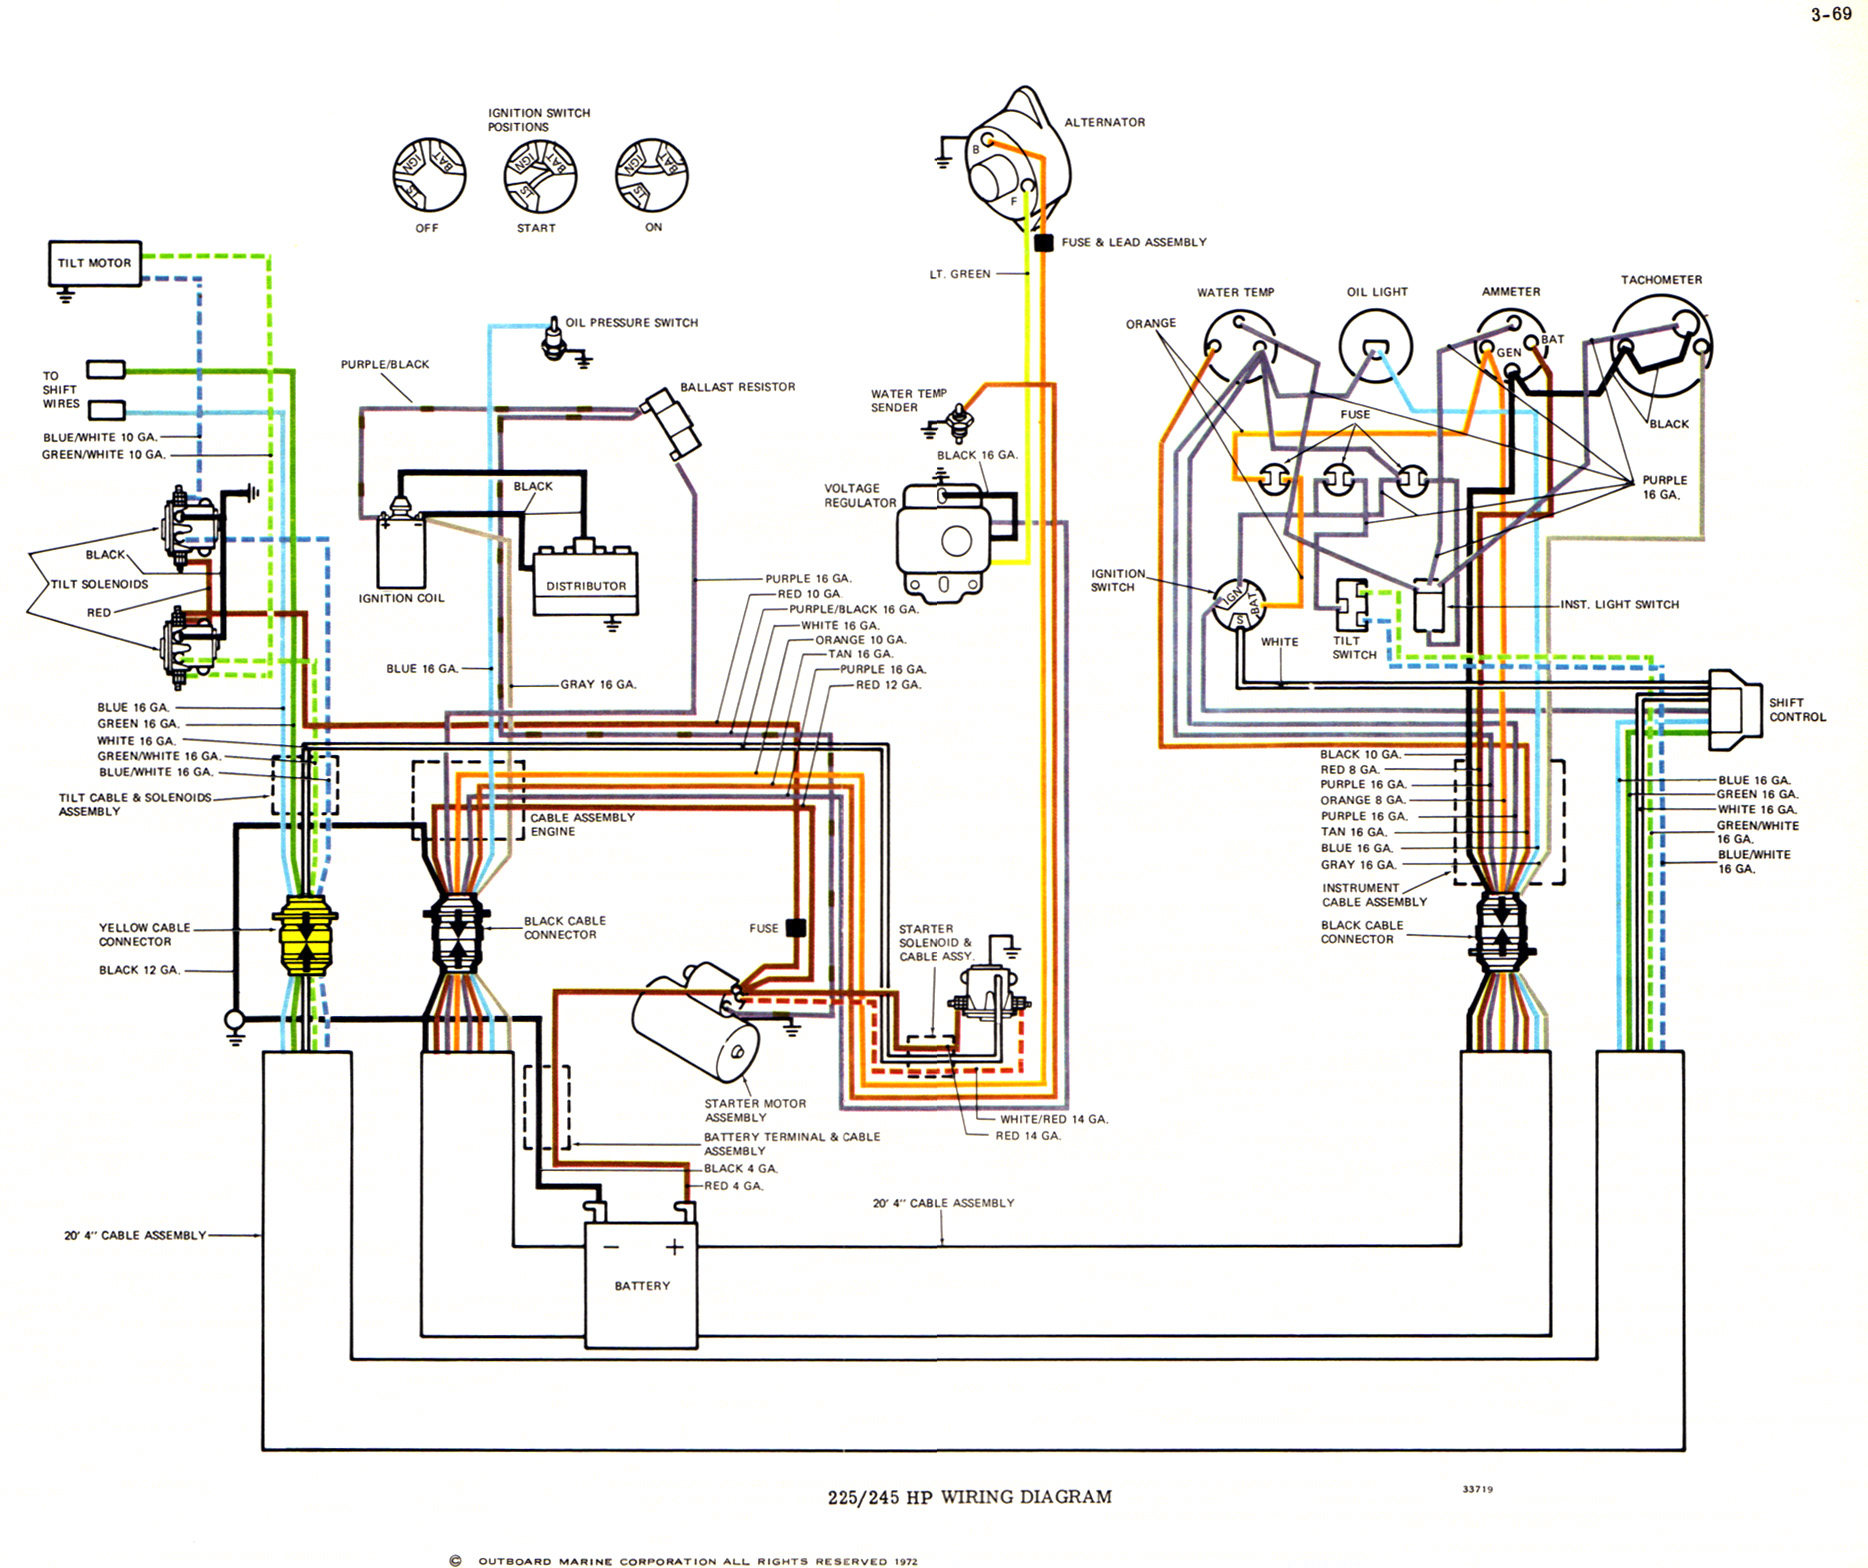 73_OMC_V8_all_big omc wiring diagram 1967 johnson 40 wiring diagram \u2022 wiring  at bakdesigns.co